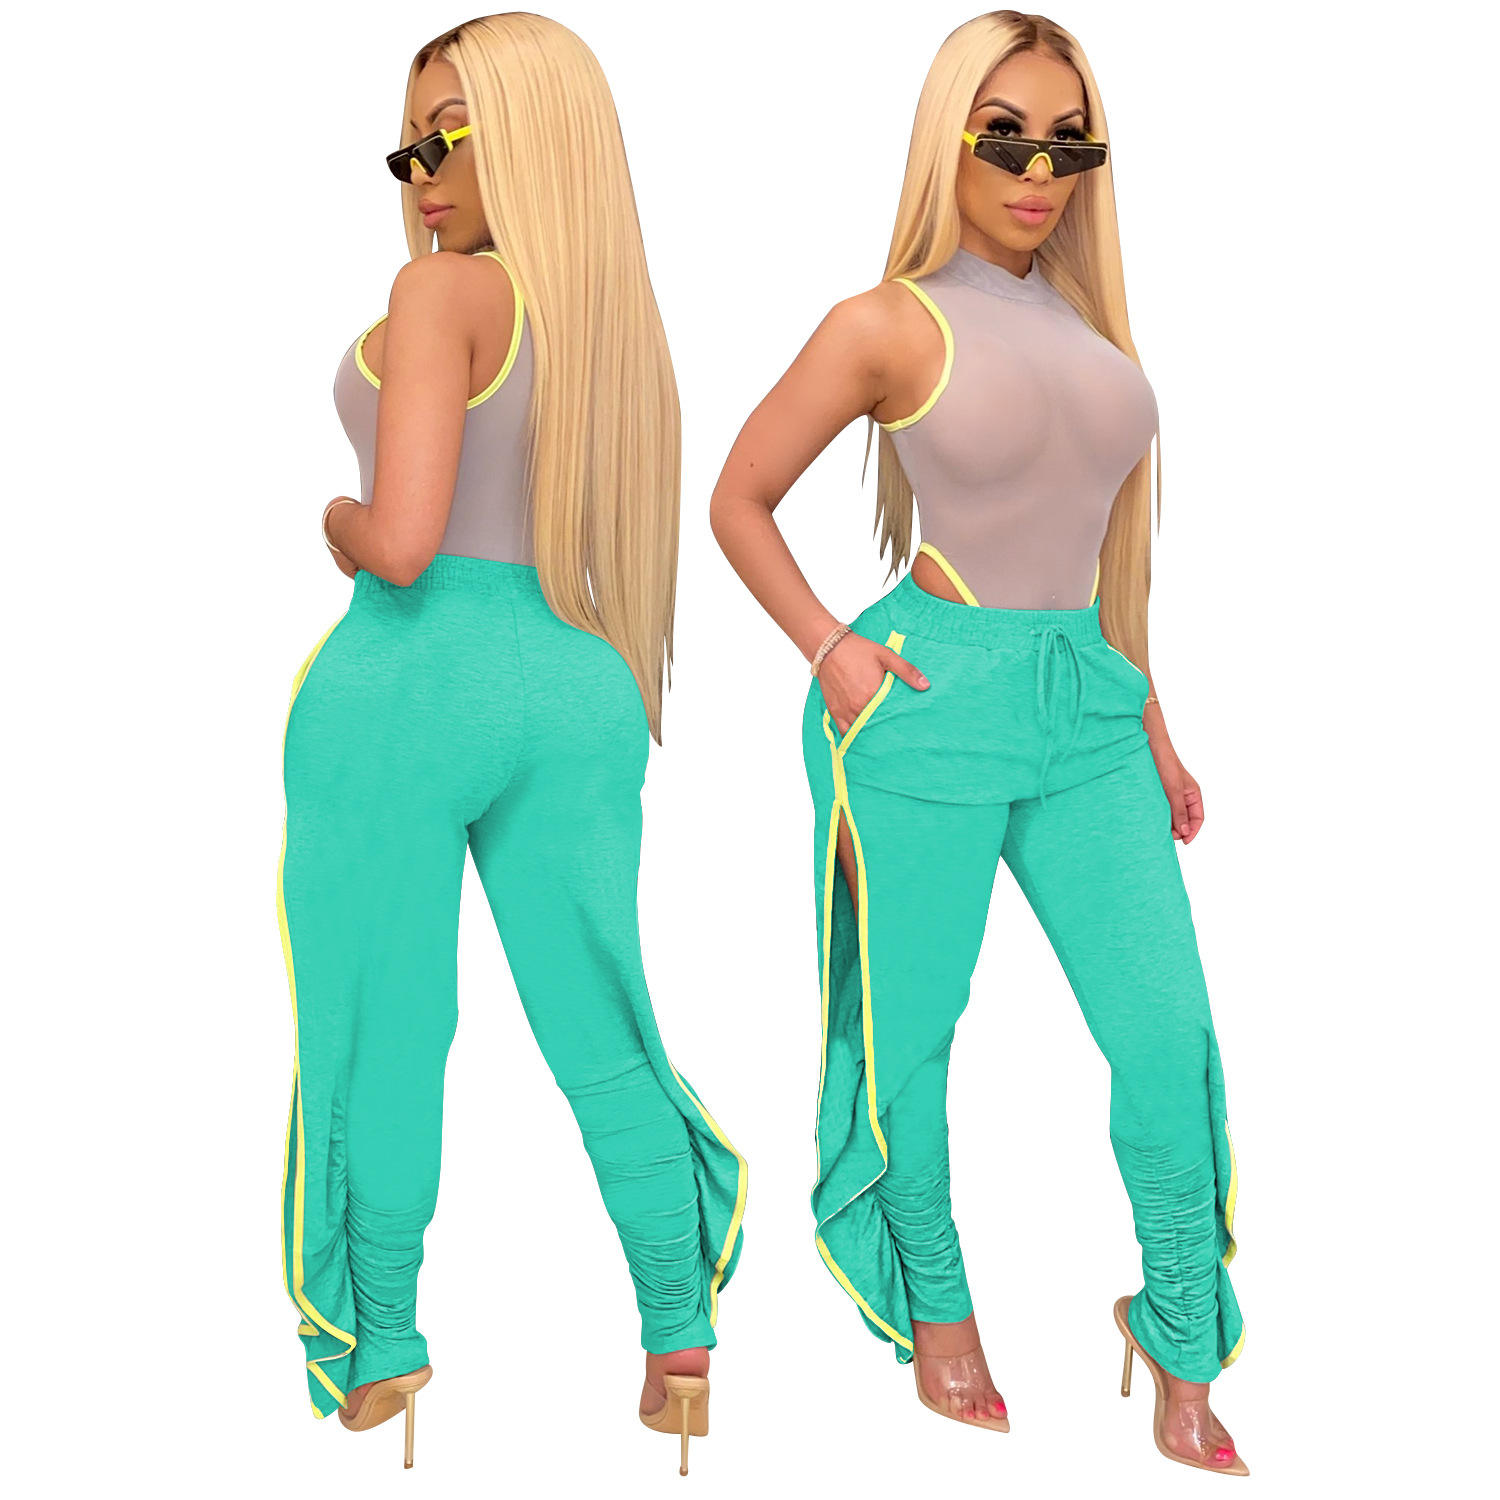 Vetement Pour Femme Musulmane Fat Women Clothing Sexy Clothes For Women Pants new style women clothing